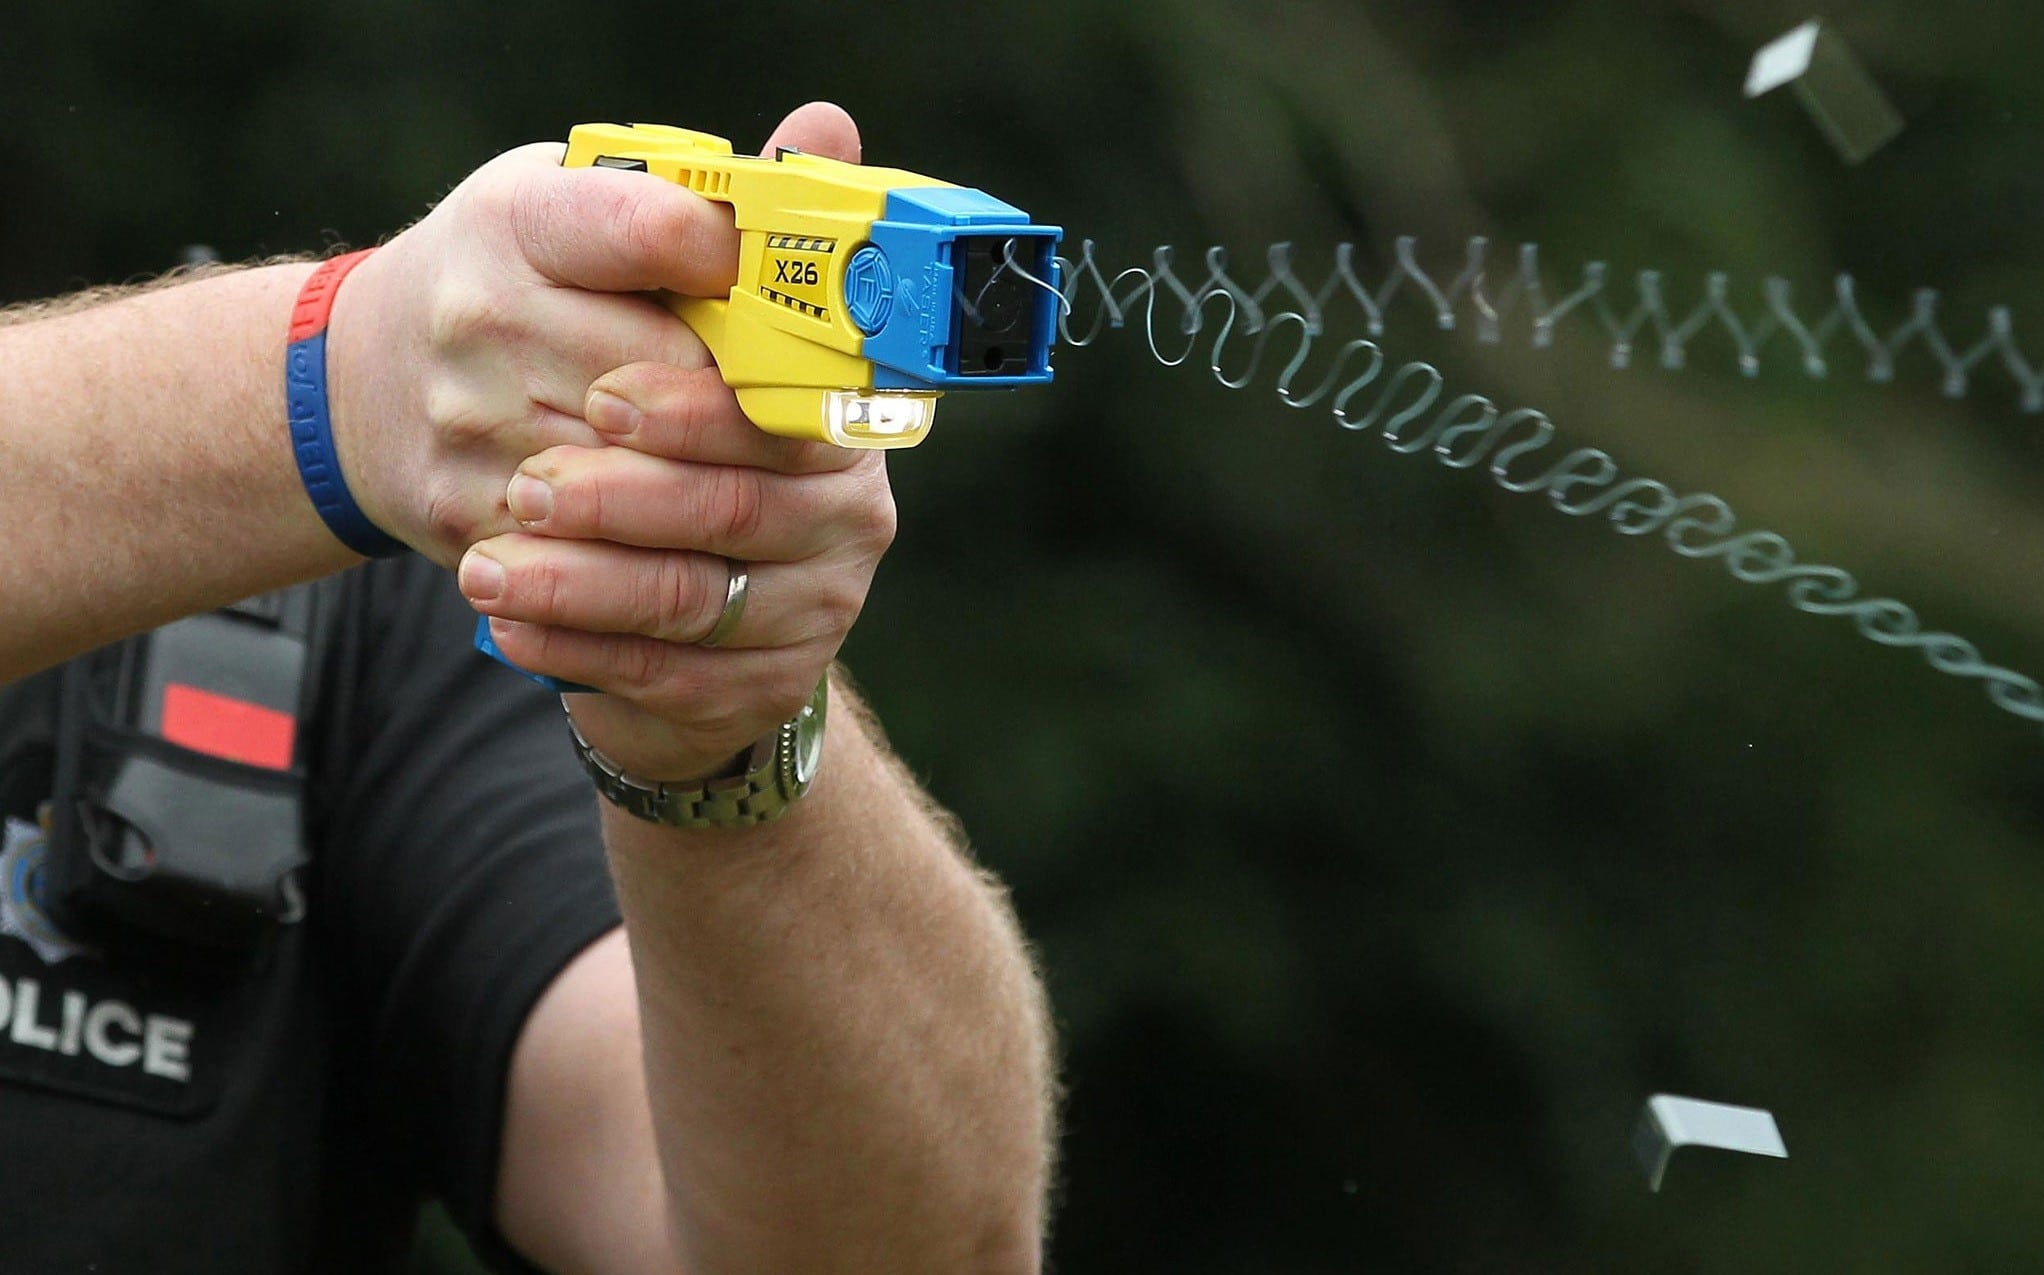 A picture of a Taser X2 being fired